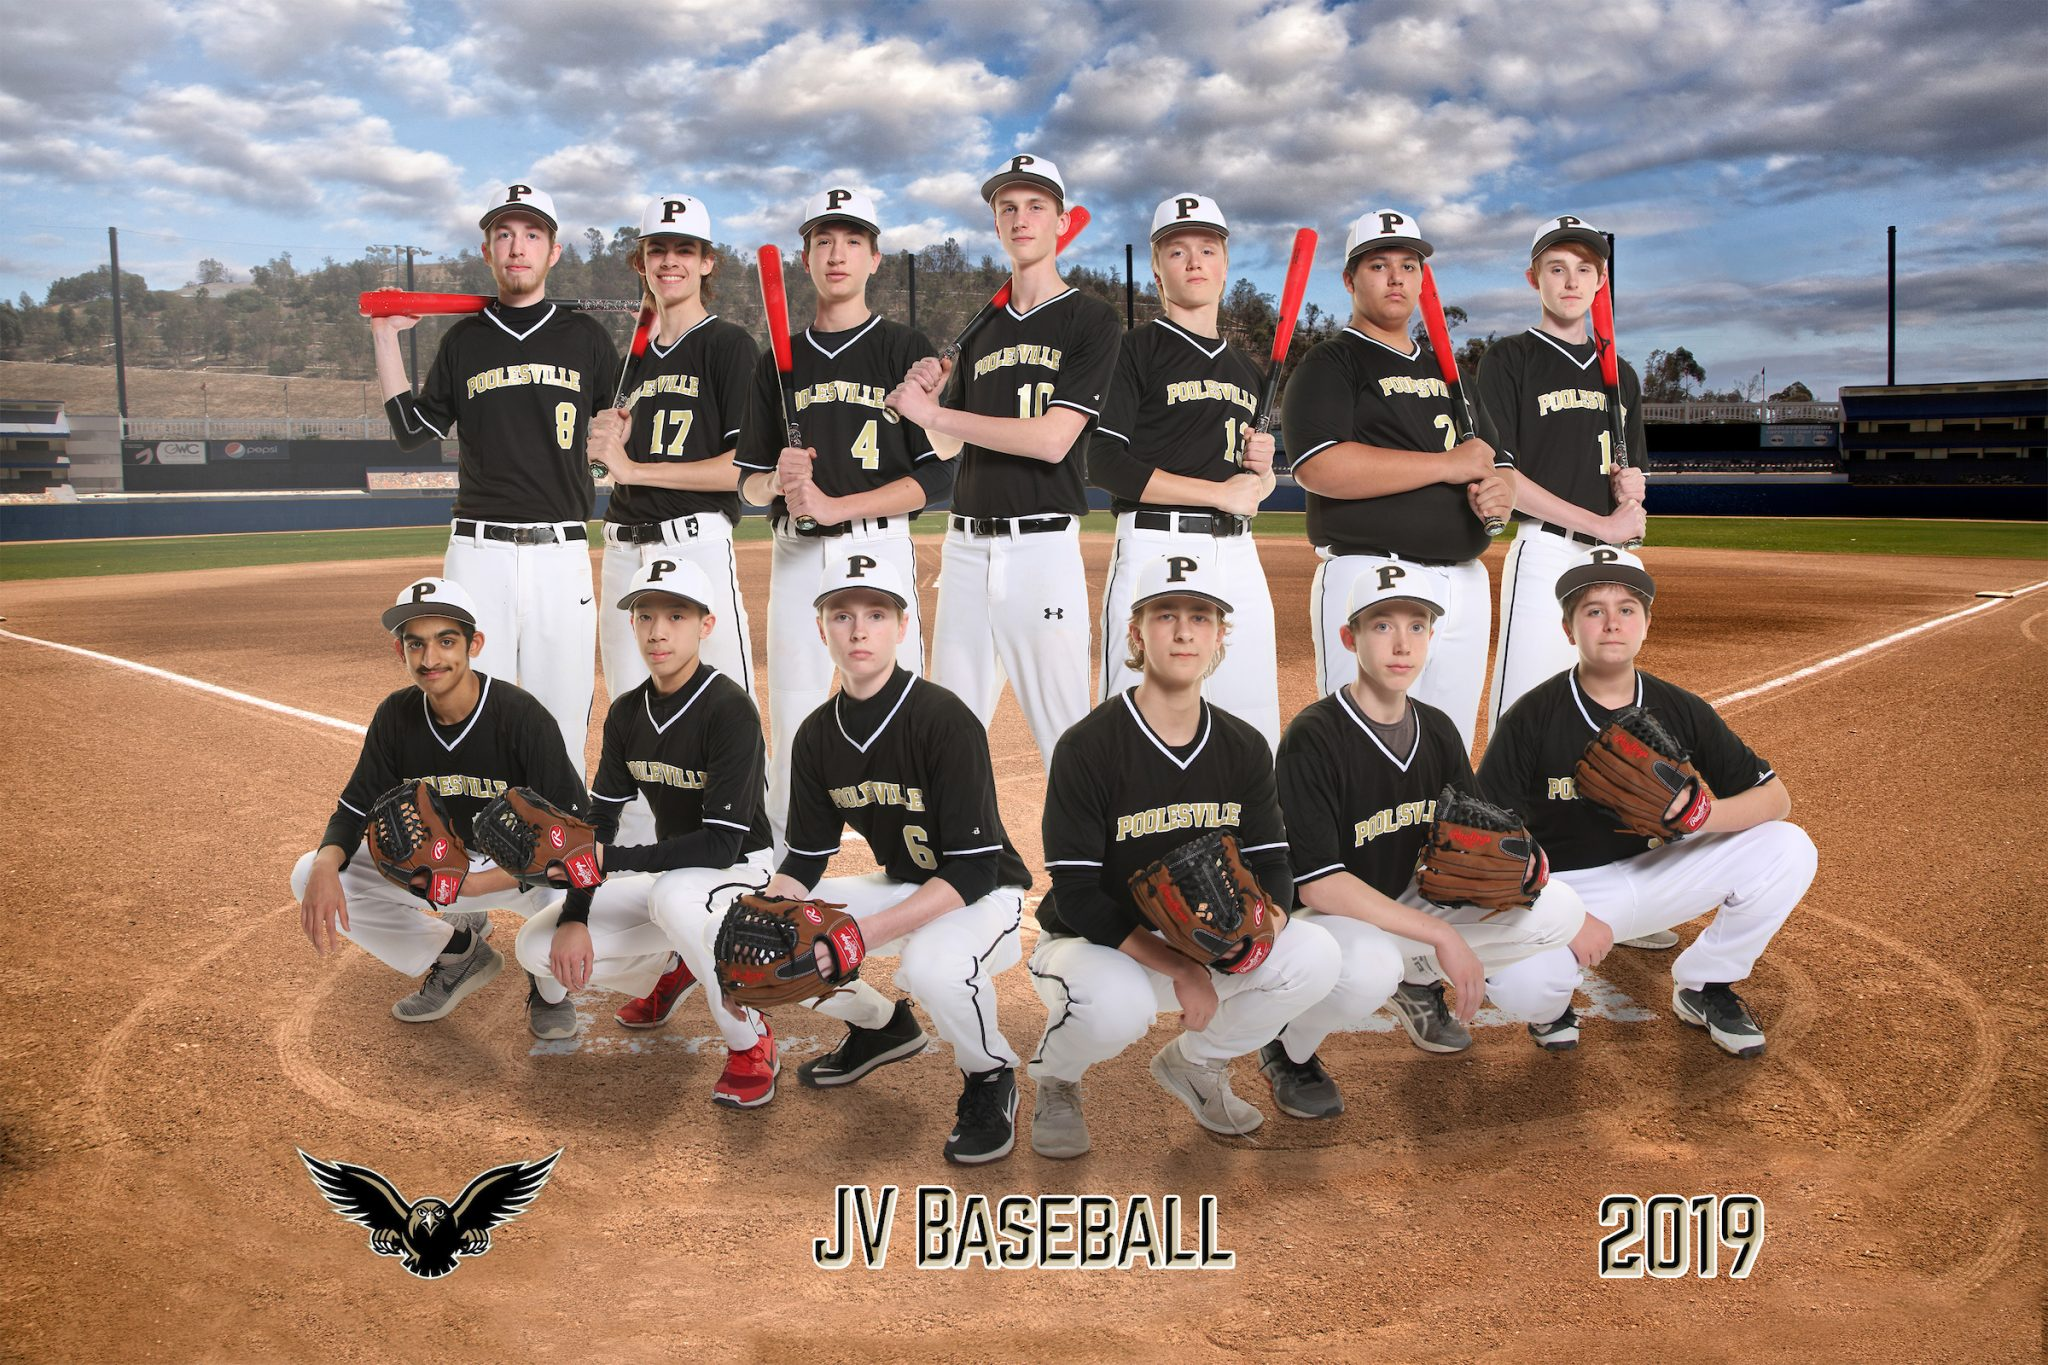 jv baseball team picture